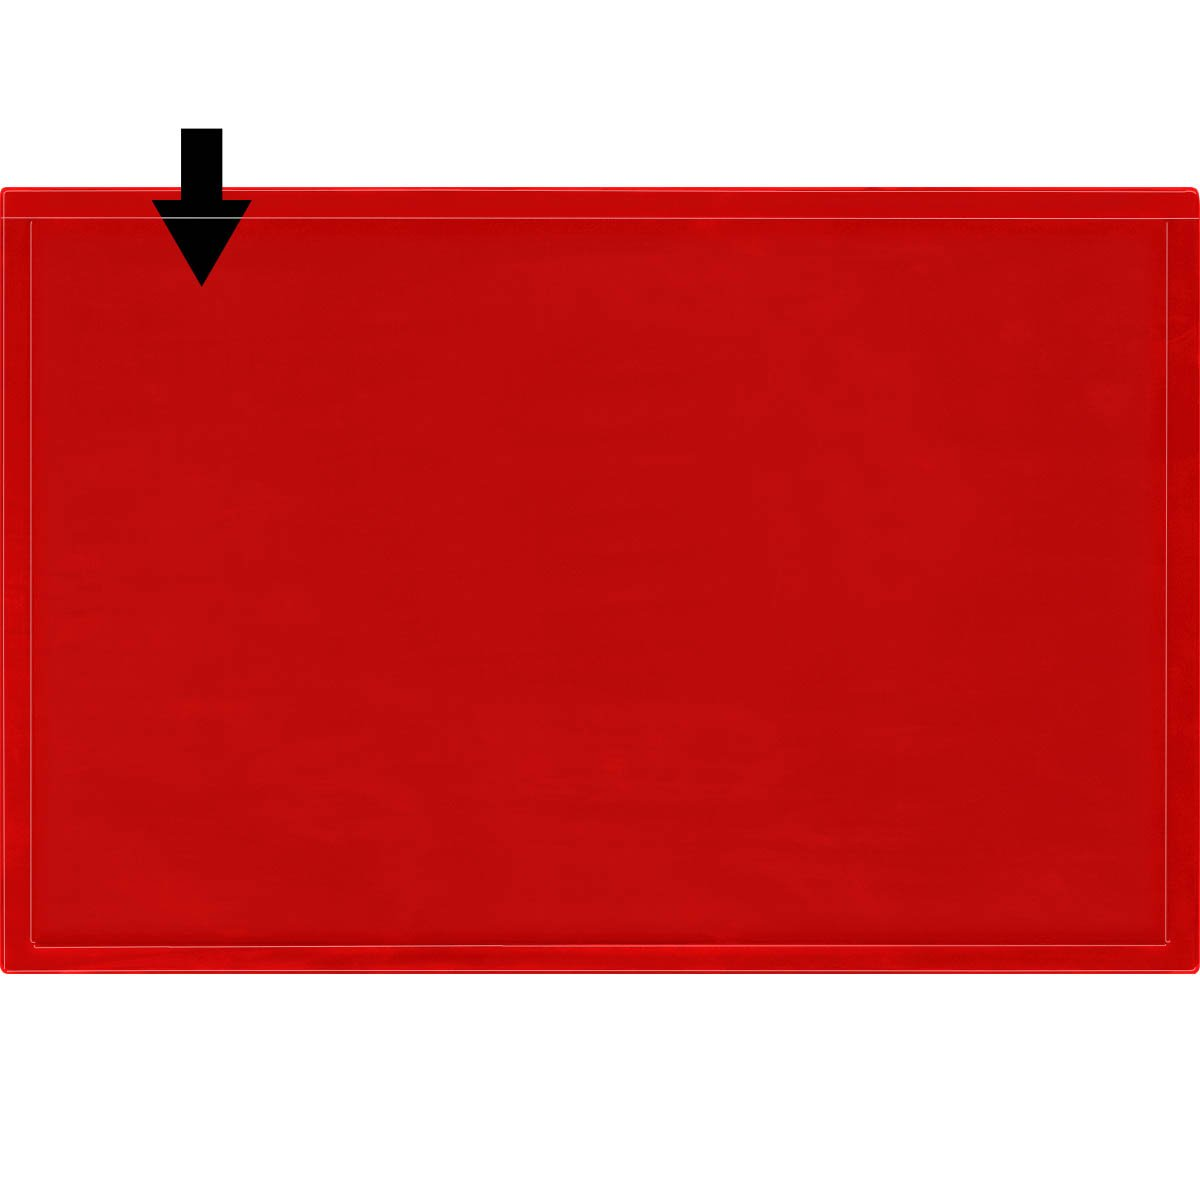 StoreSMART - Red Document Frame (Window) - Magnetic - 11'' x 17'' Pages - 10-Pack - R3871M-R-10 by StoreSMART (Image #2)